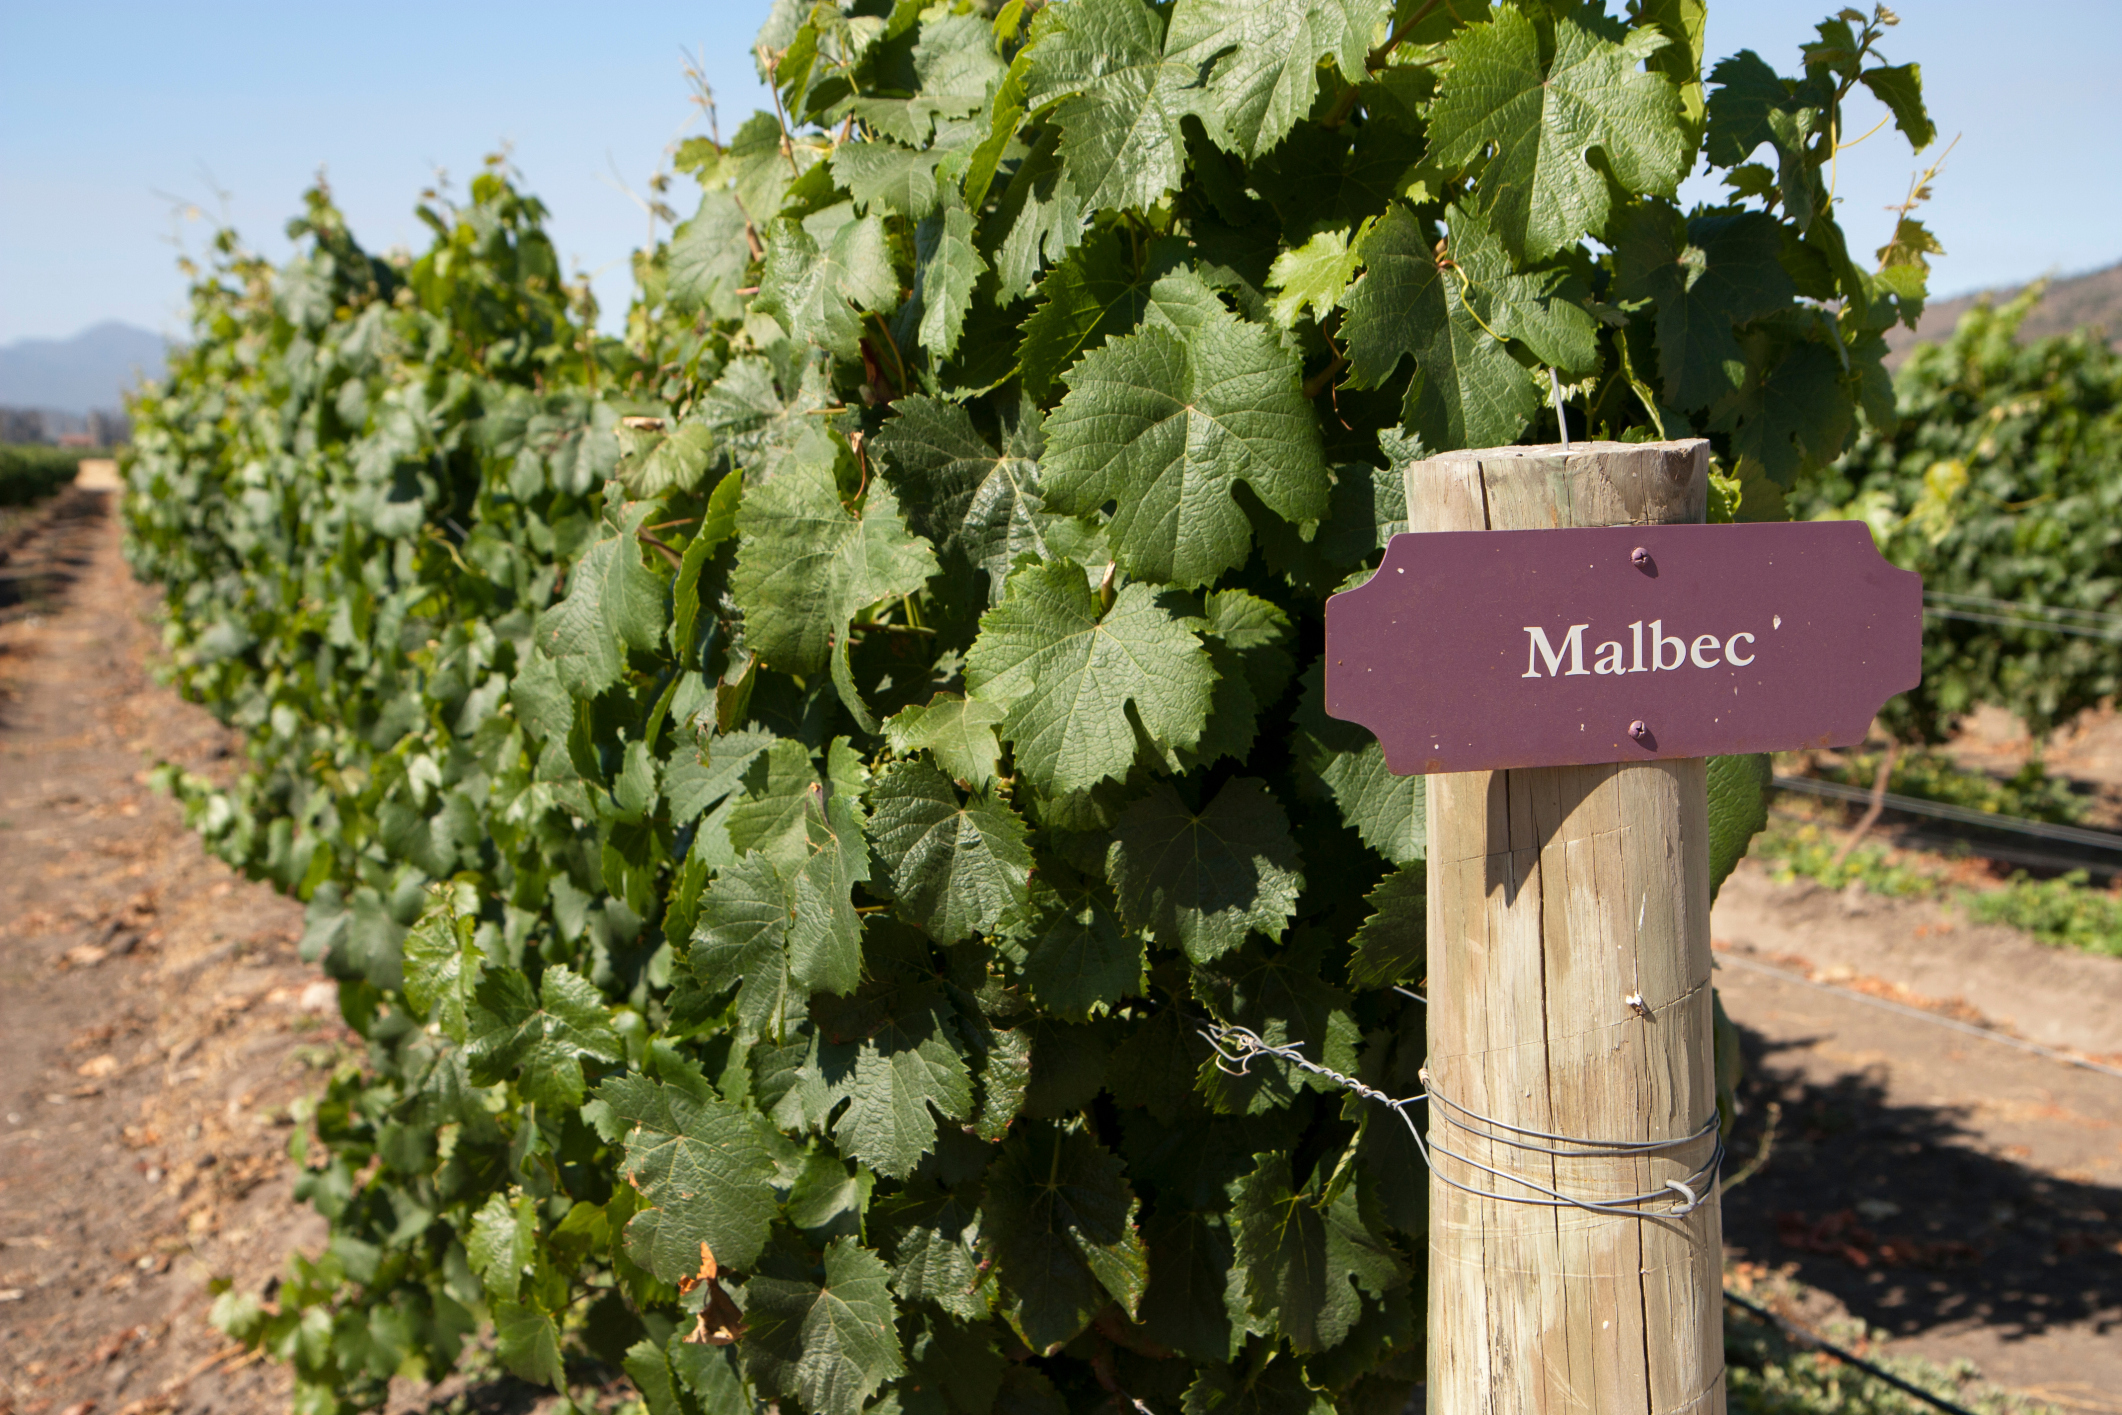 Vineyard - Malbec